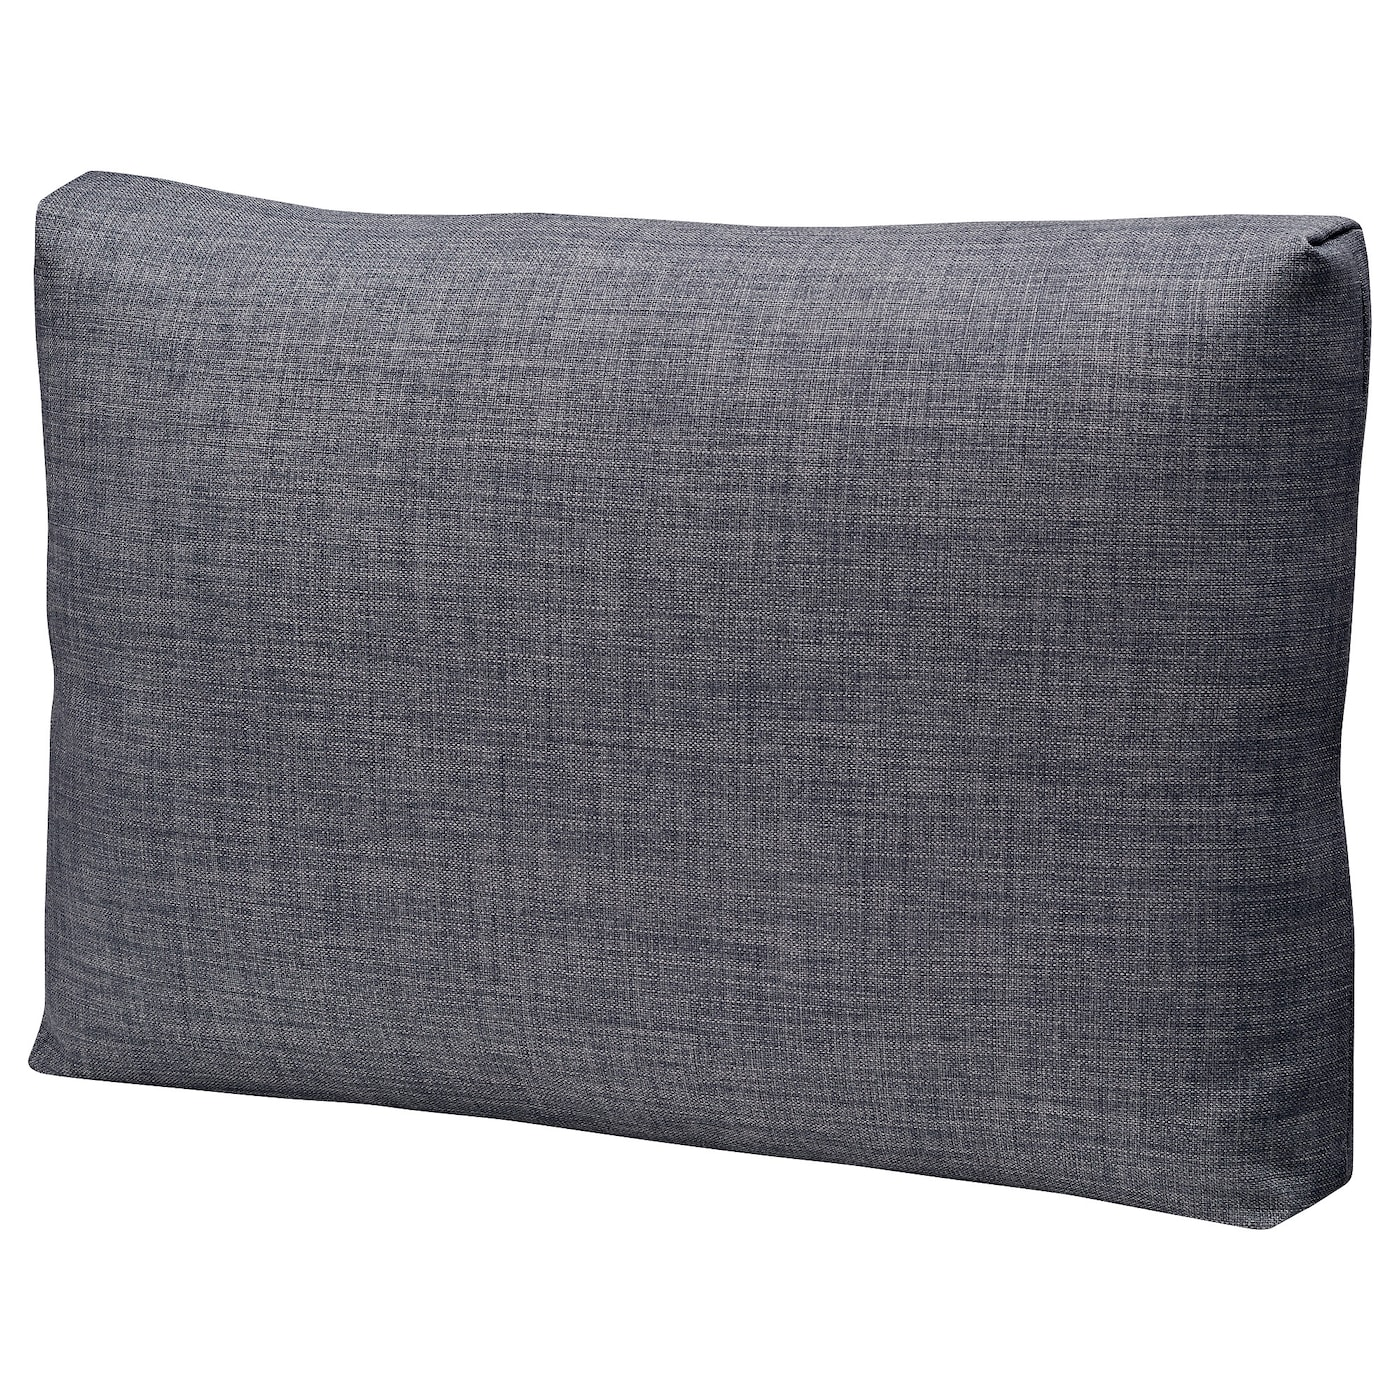 IKEA FRIHETEN cushion The polyester filling holds its shape and gives your body soft support.